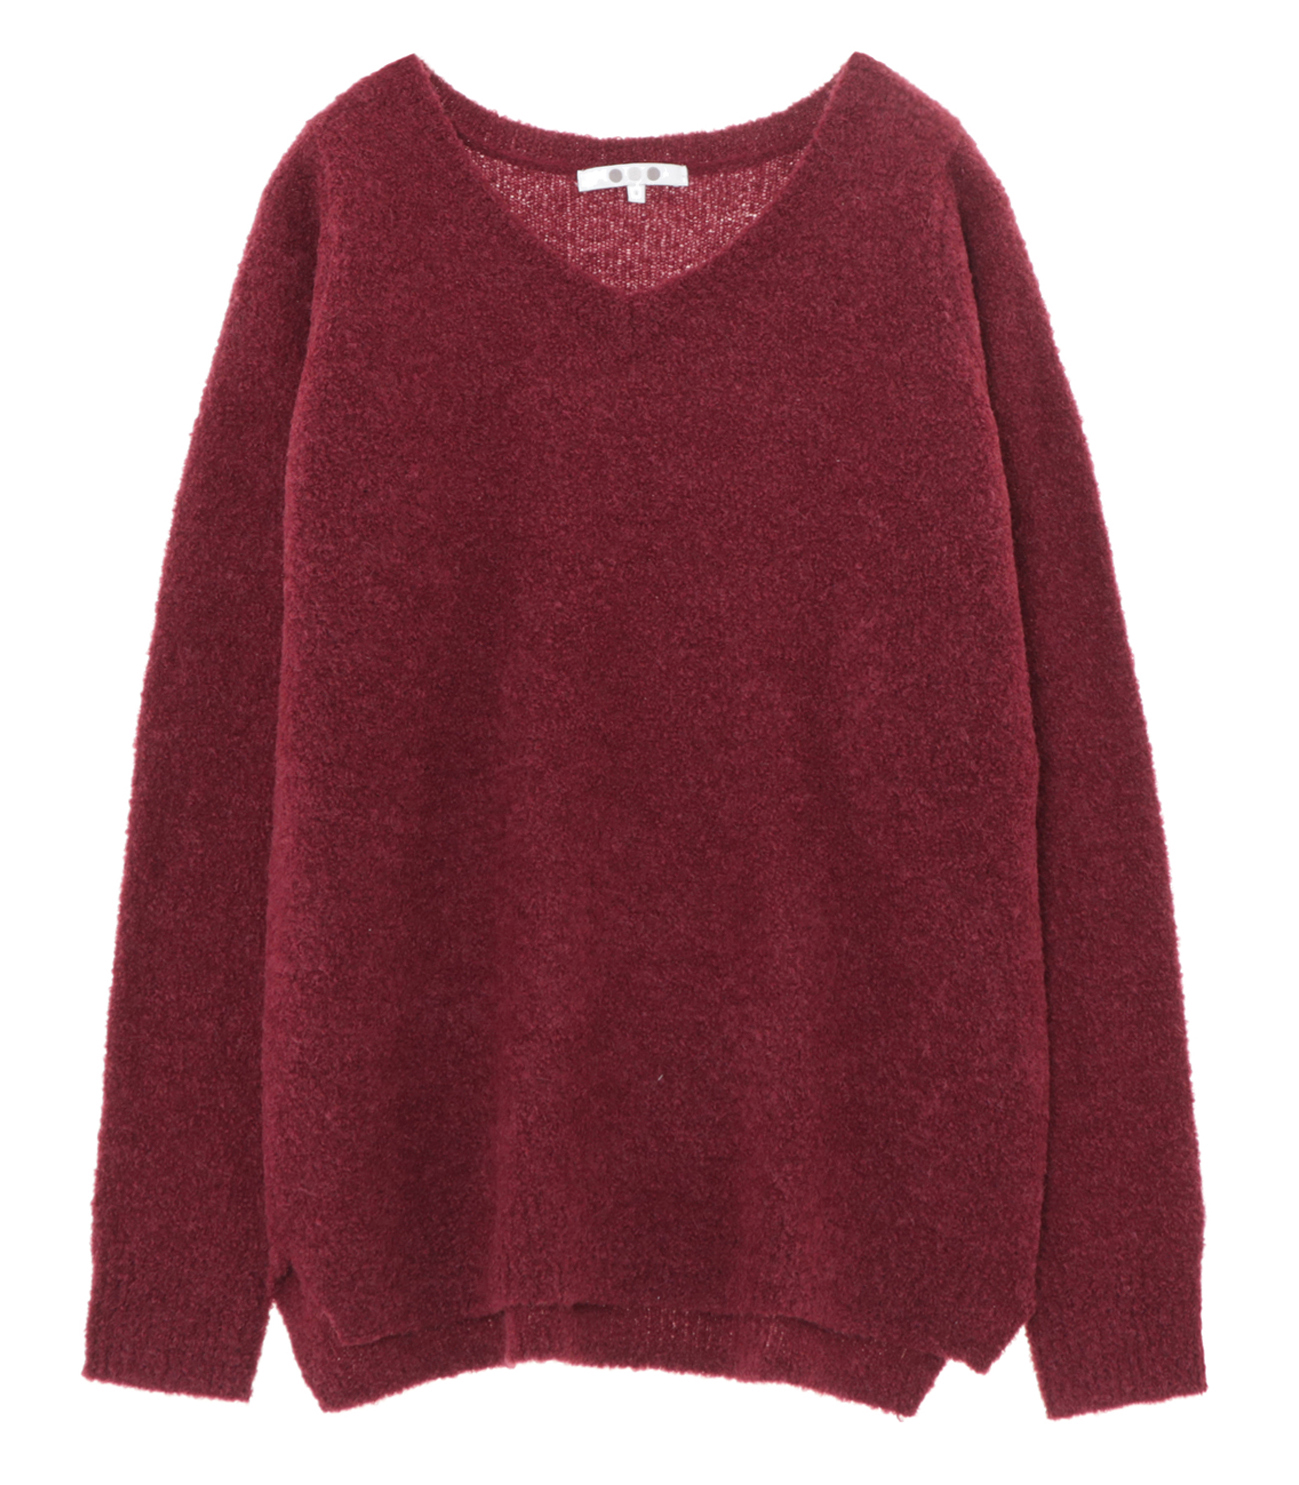 alpaca mixed boucle v neck pull 詳細画像 burgandy 1